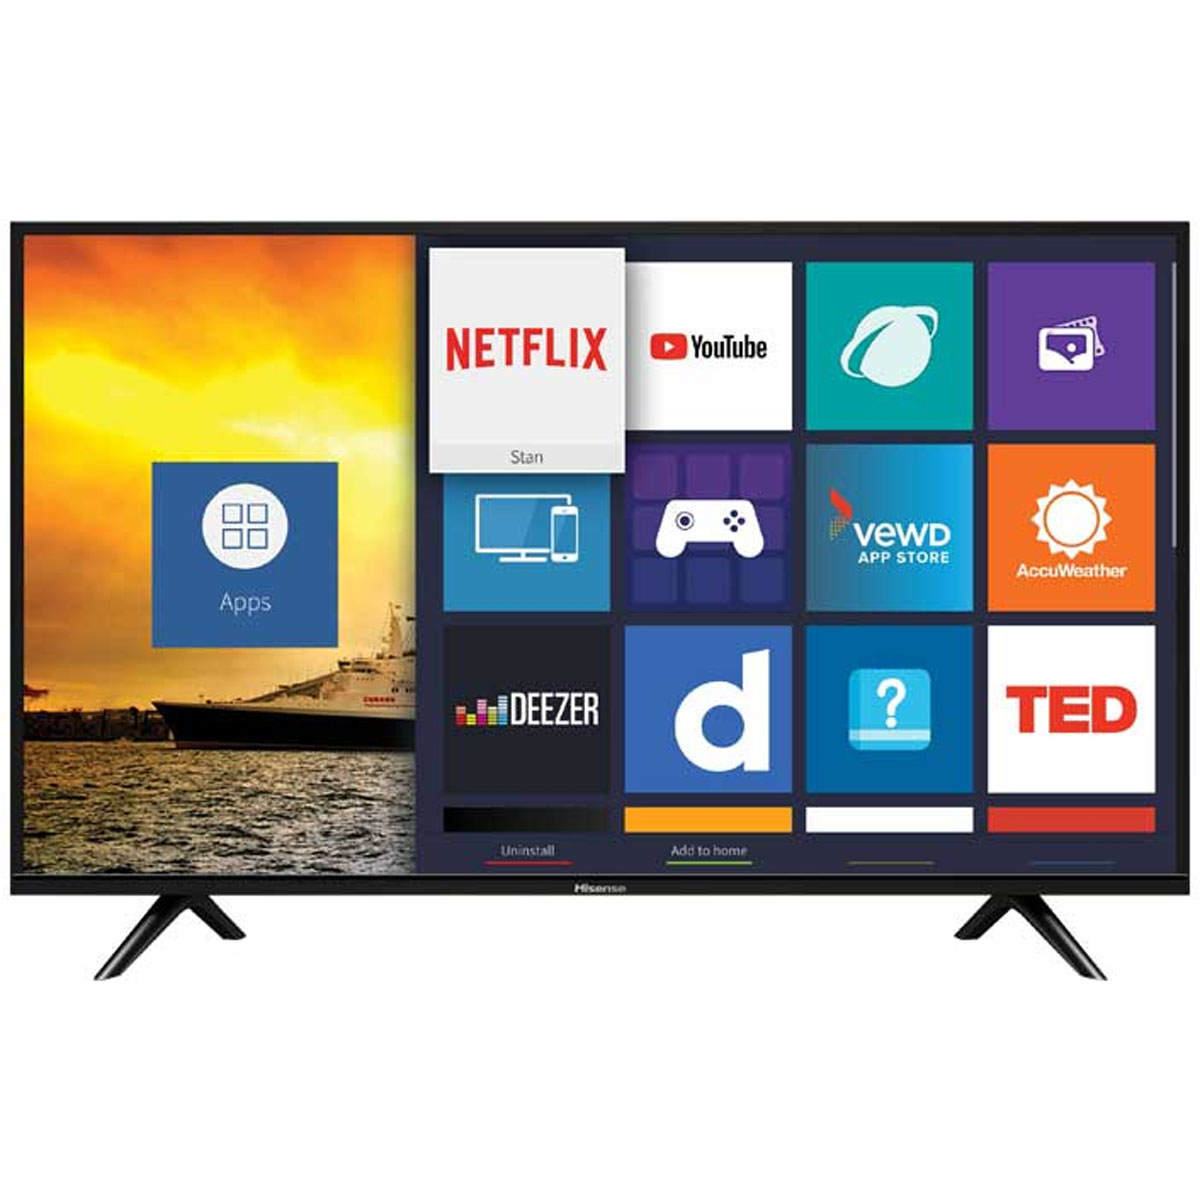 Hisense 43 Inch FHD Smart LED TV (E5600EX)